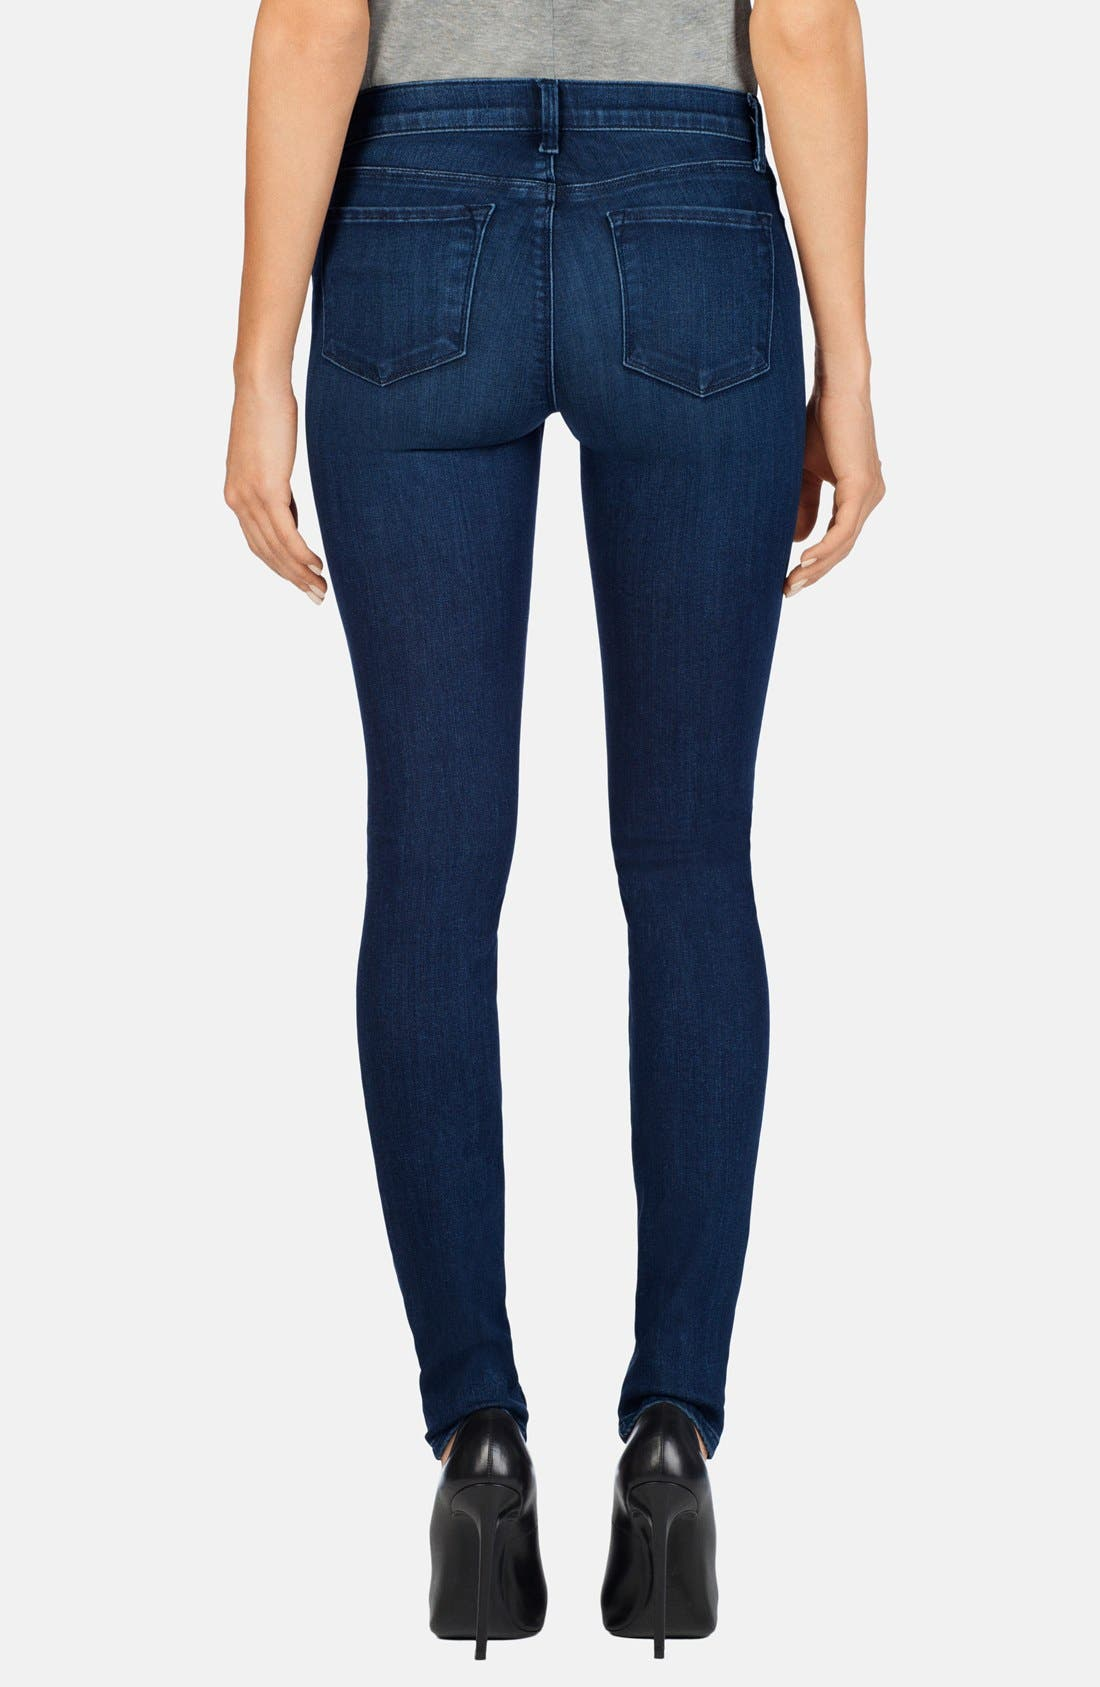 '620' Mid Rise Super Skinny Jeans,                             Alternate thumbnail 2, color,                             Fix